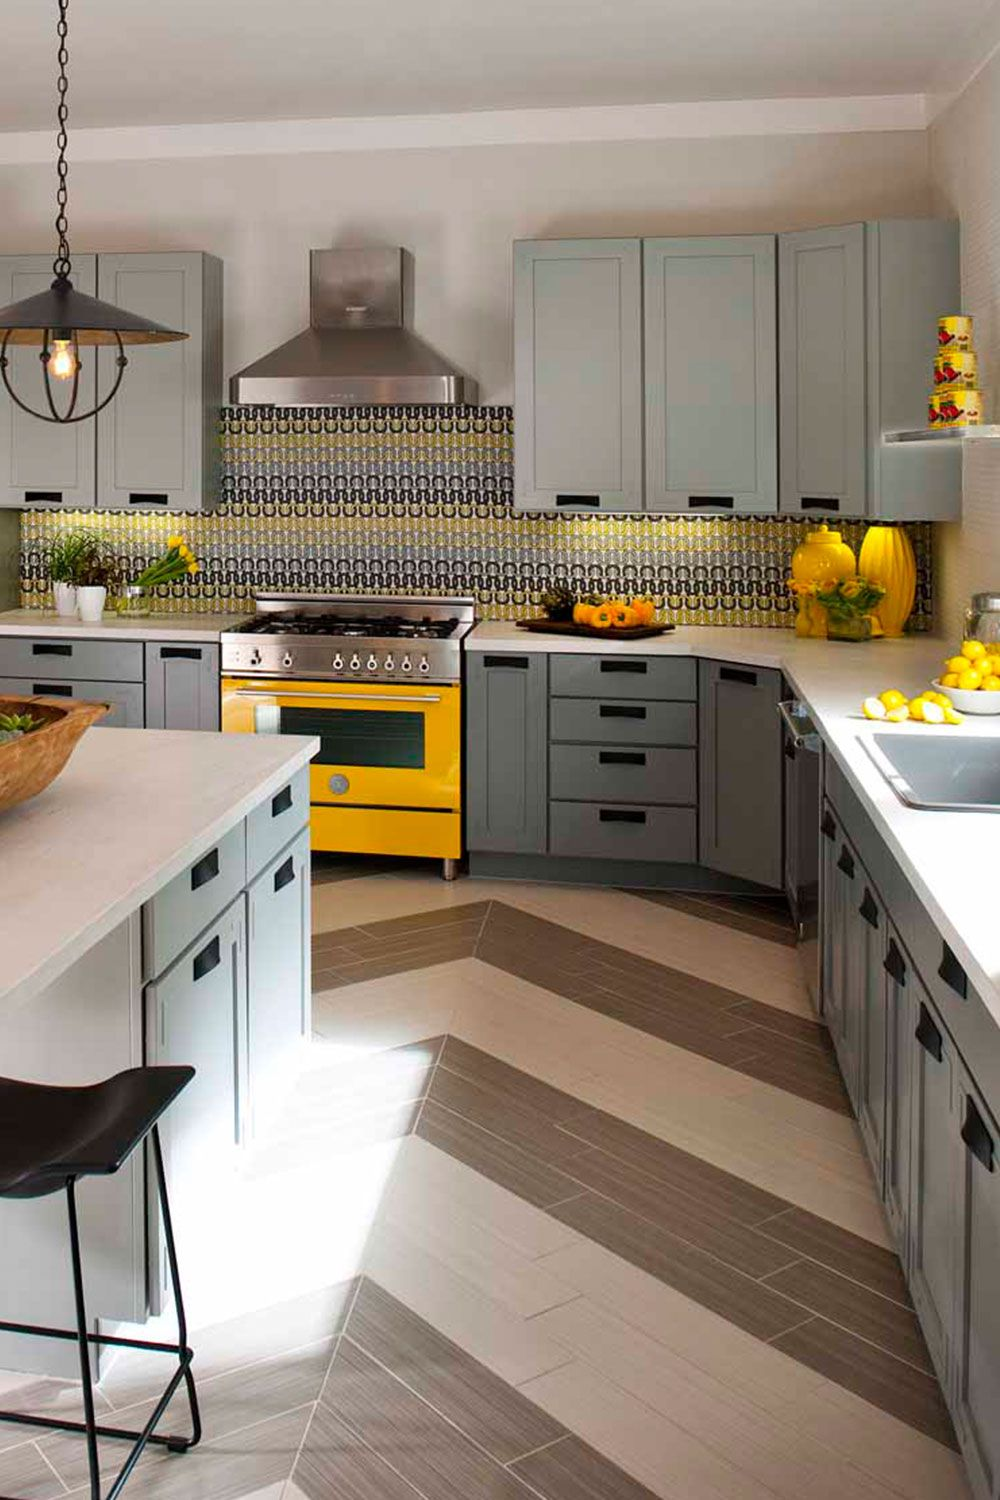 6 Yellow Kitchen Ideas - Decorating Tips for Yellow Colored Kitchens